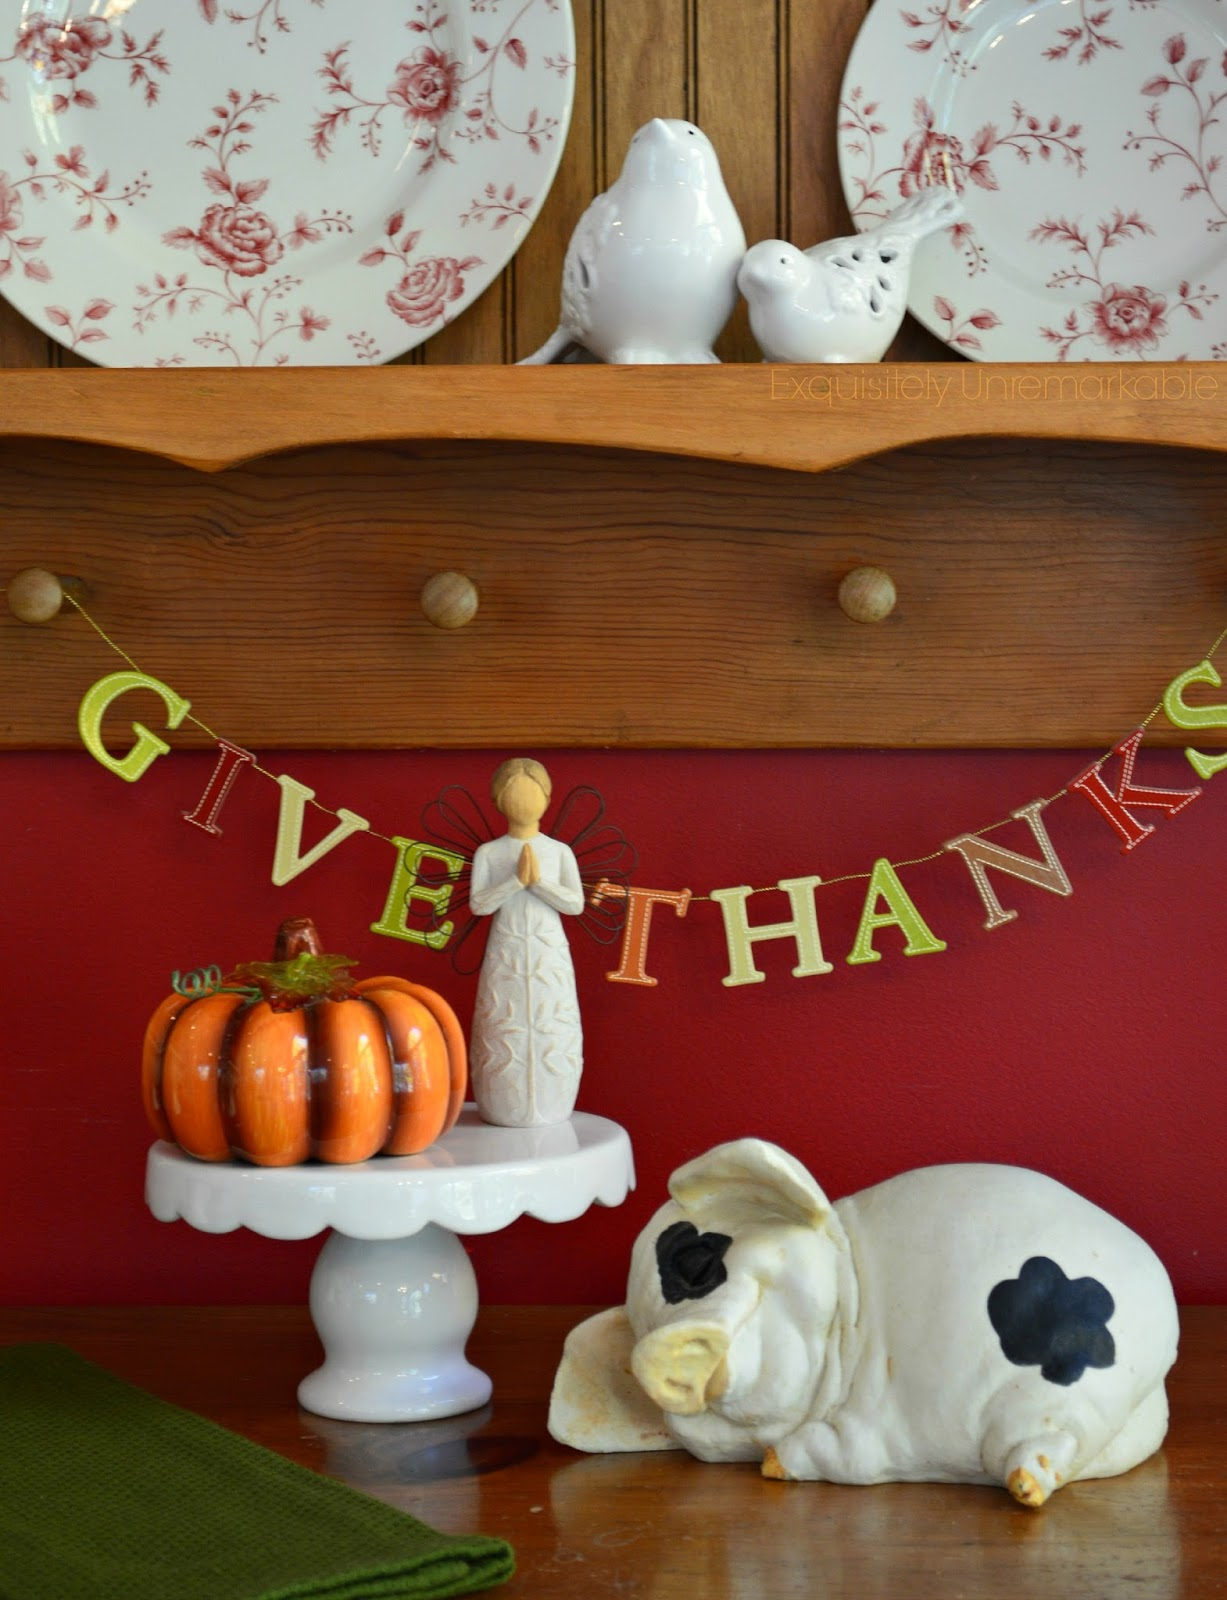 Give Thanks Letter Banner hung on a plate rack next to small statues of angel, pumpkin and sleeping piglet